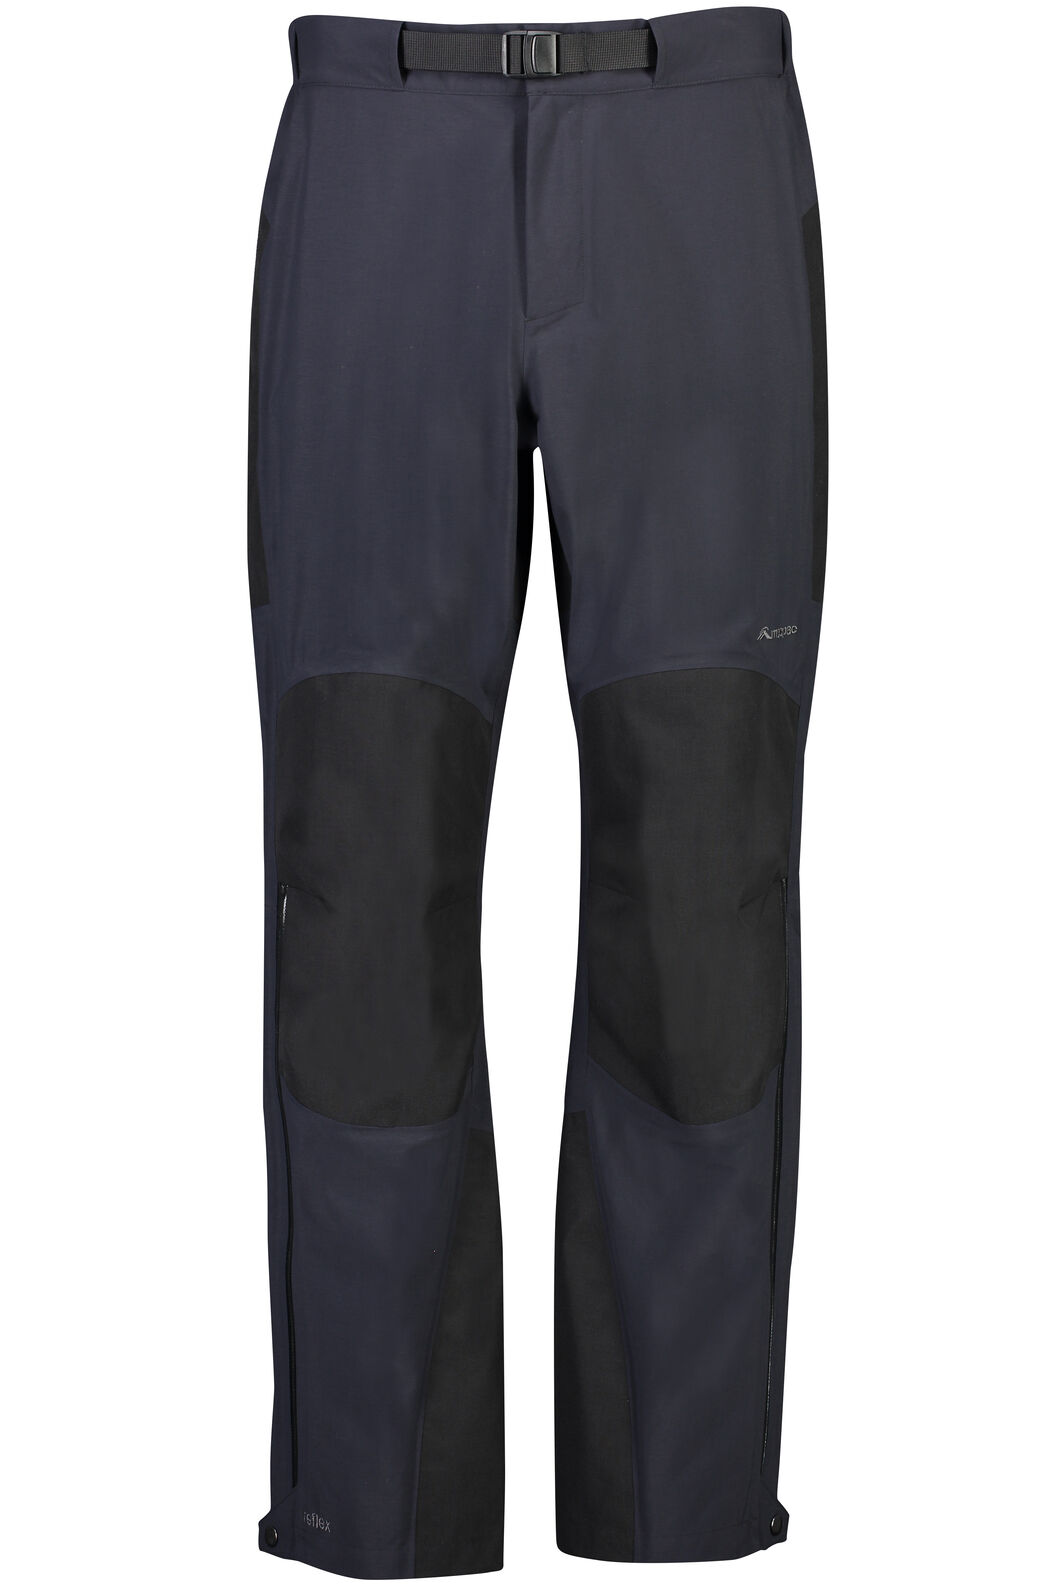 Macpac Gauge Rain Pants - Men's, Black, hi-res